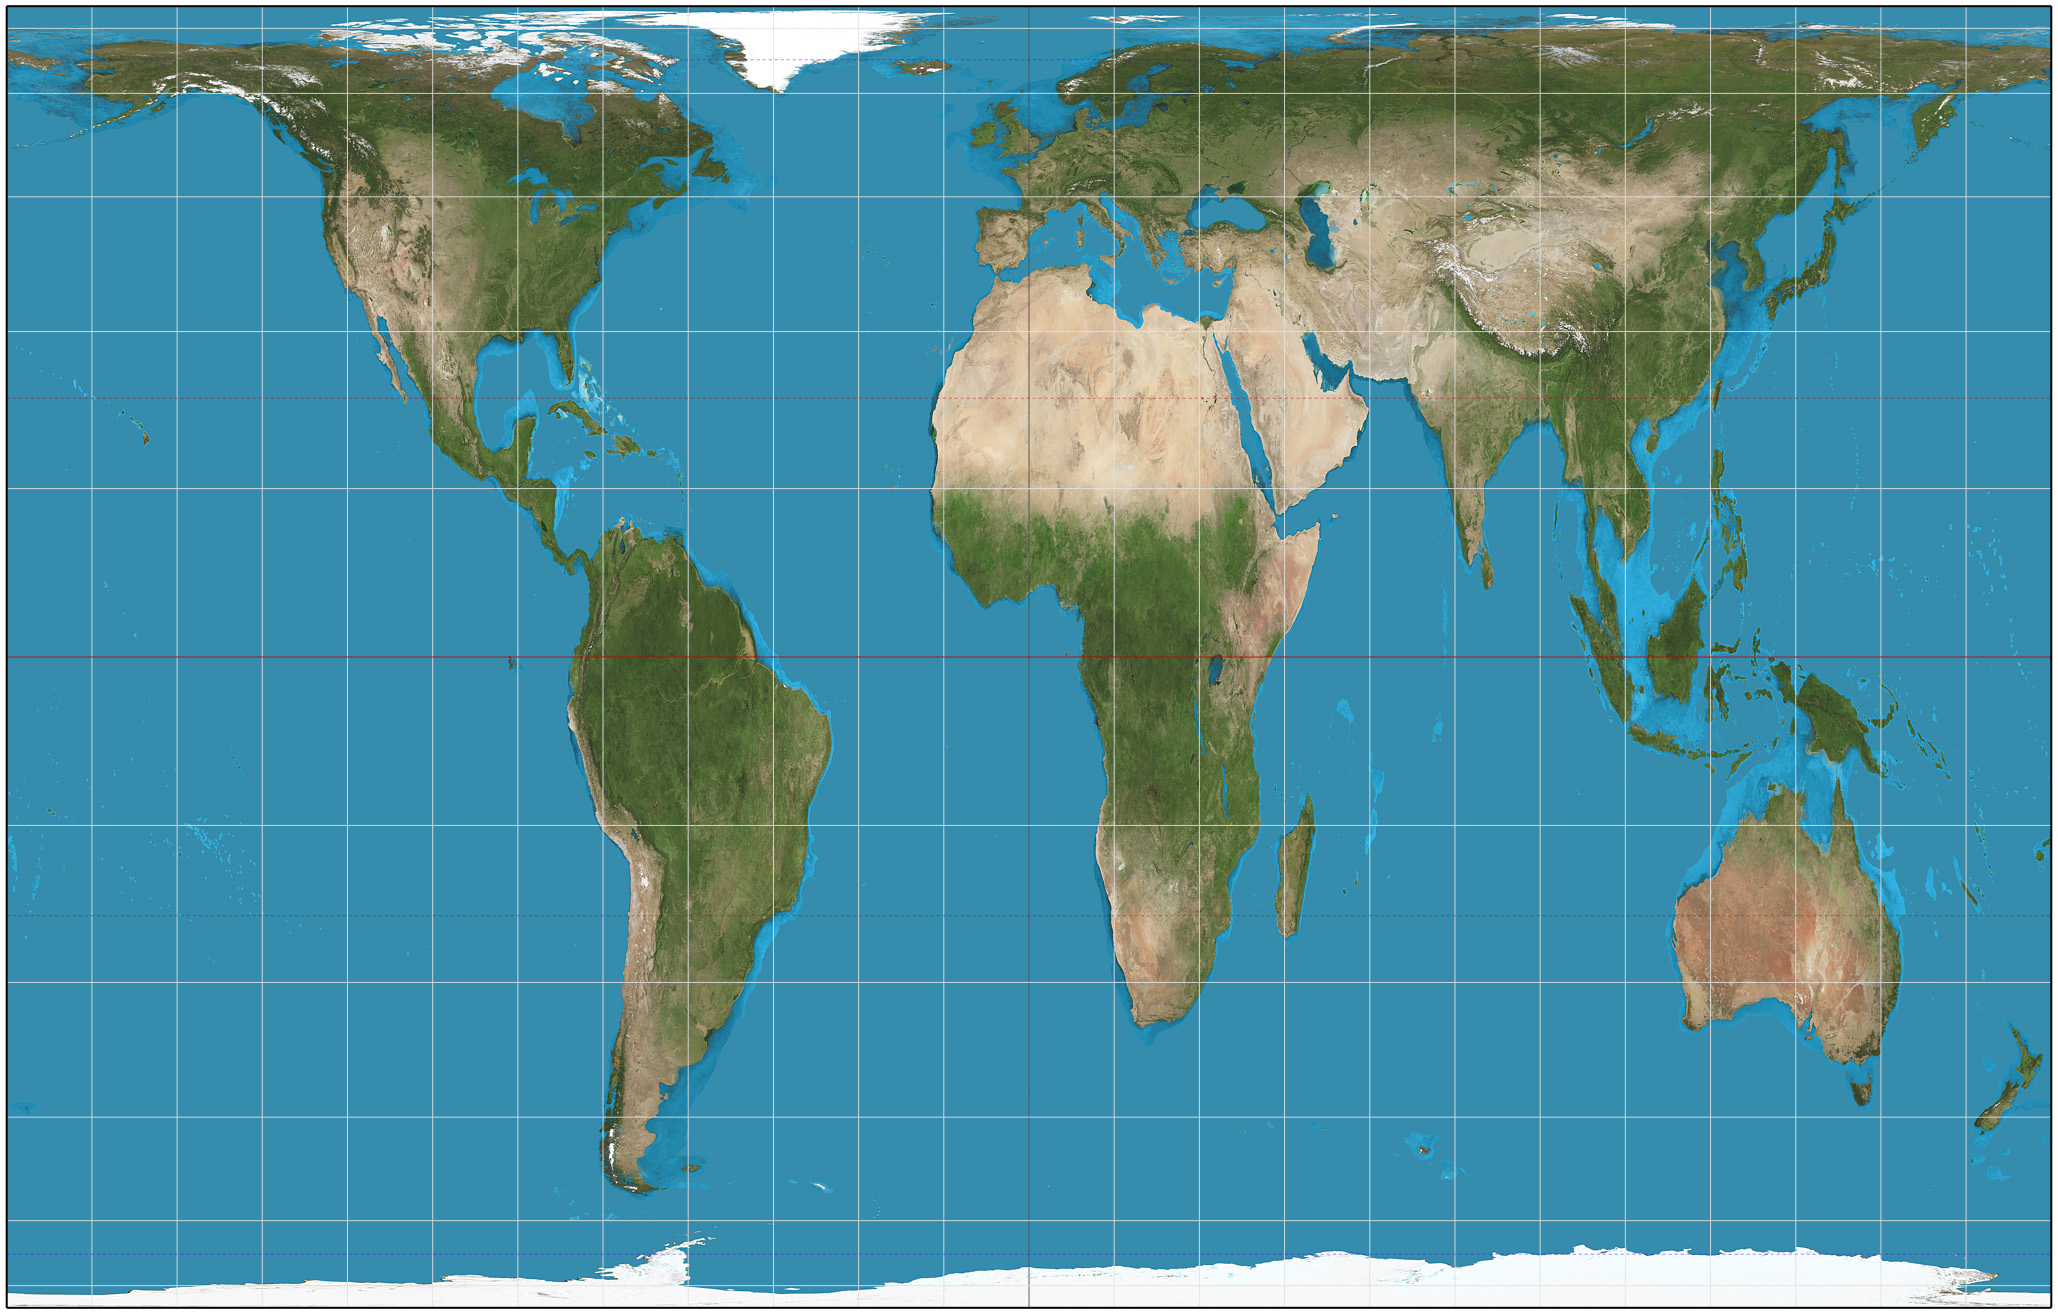 It's time to tackle the racism that lurks in our classrooms, starting with the map of the world